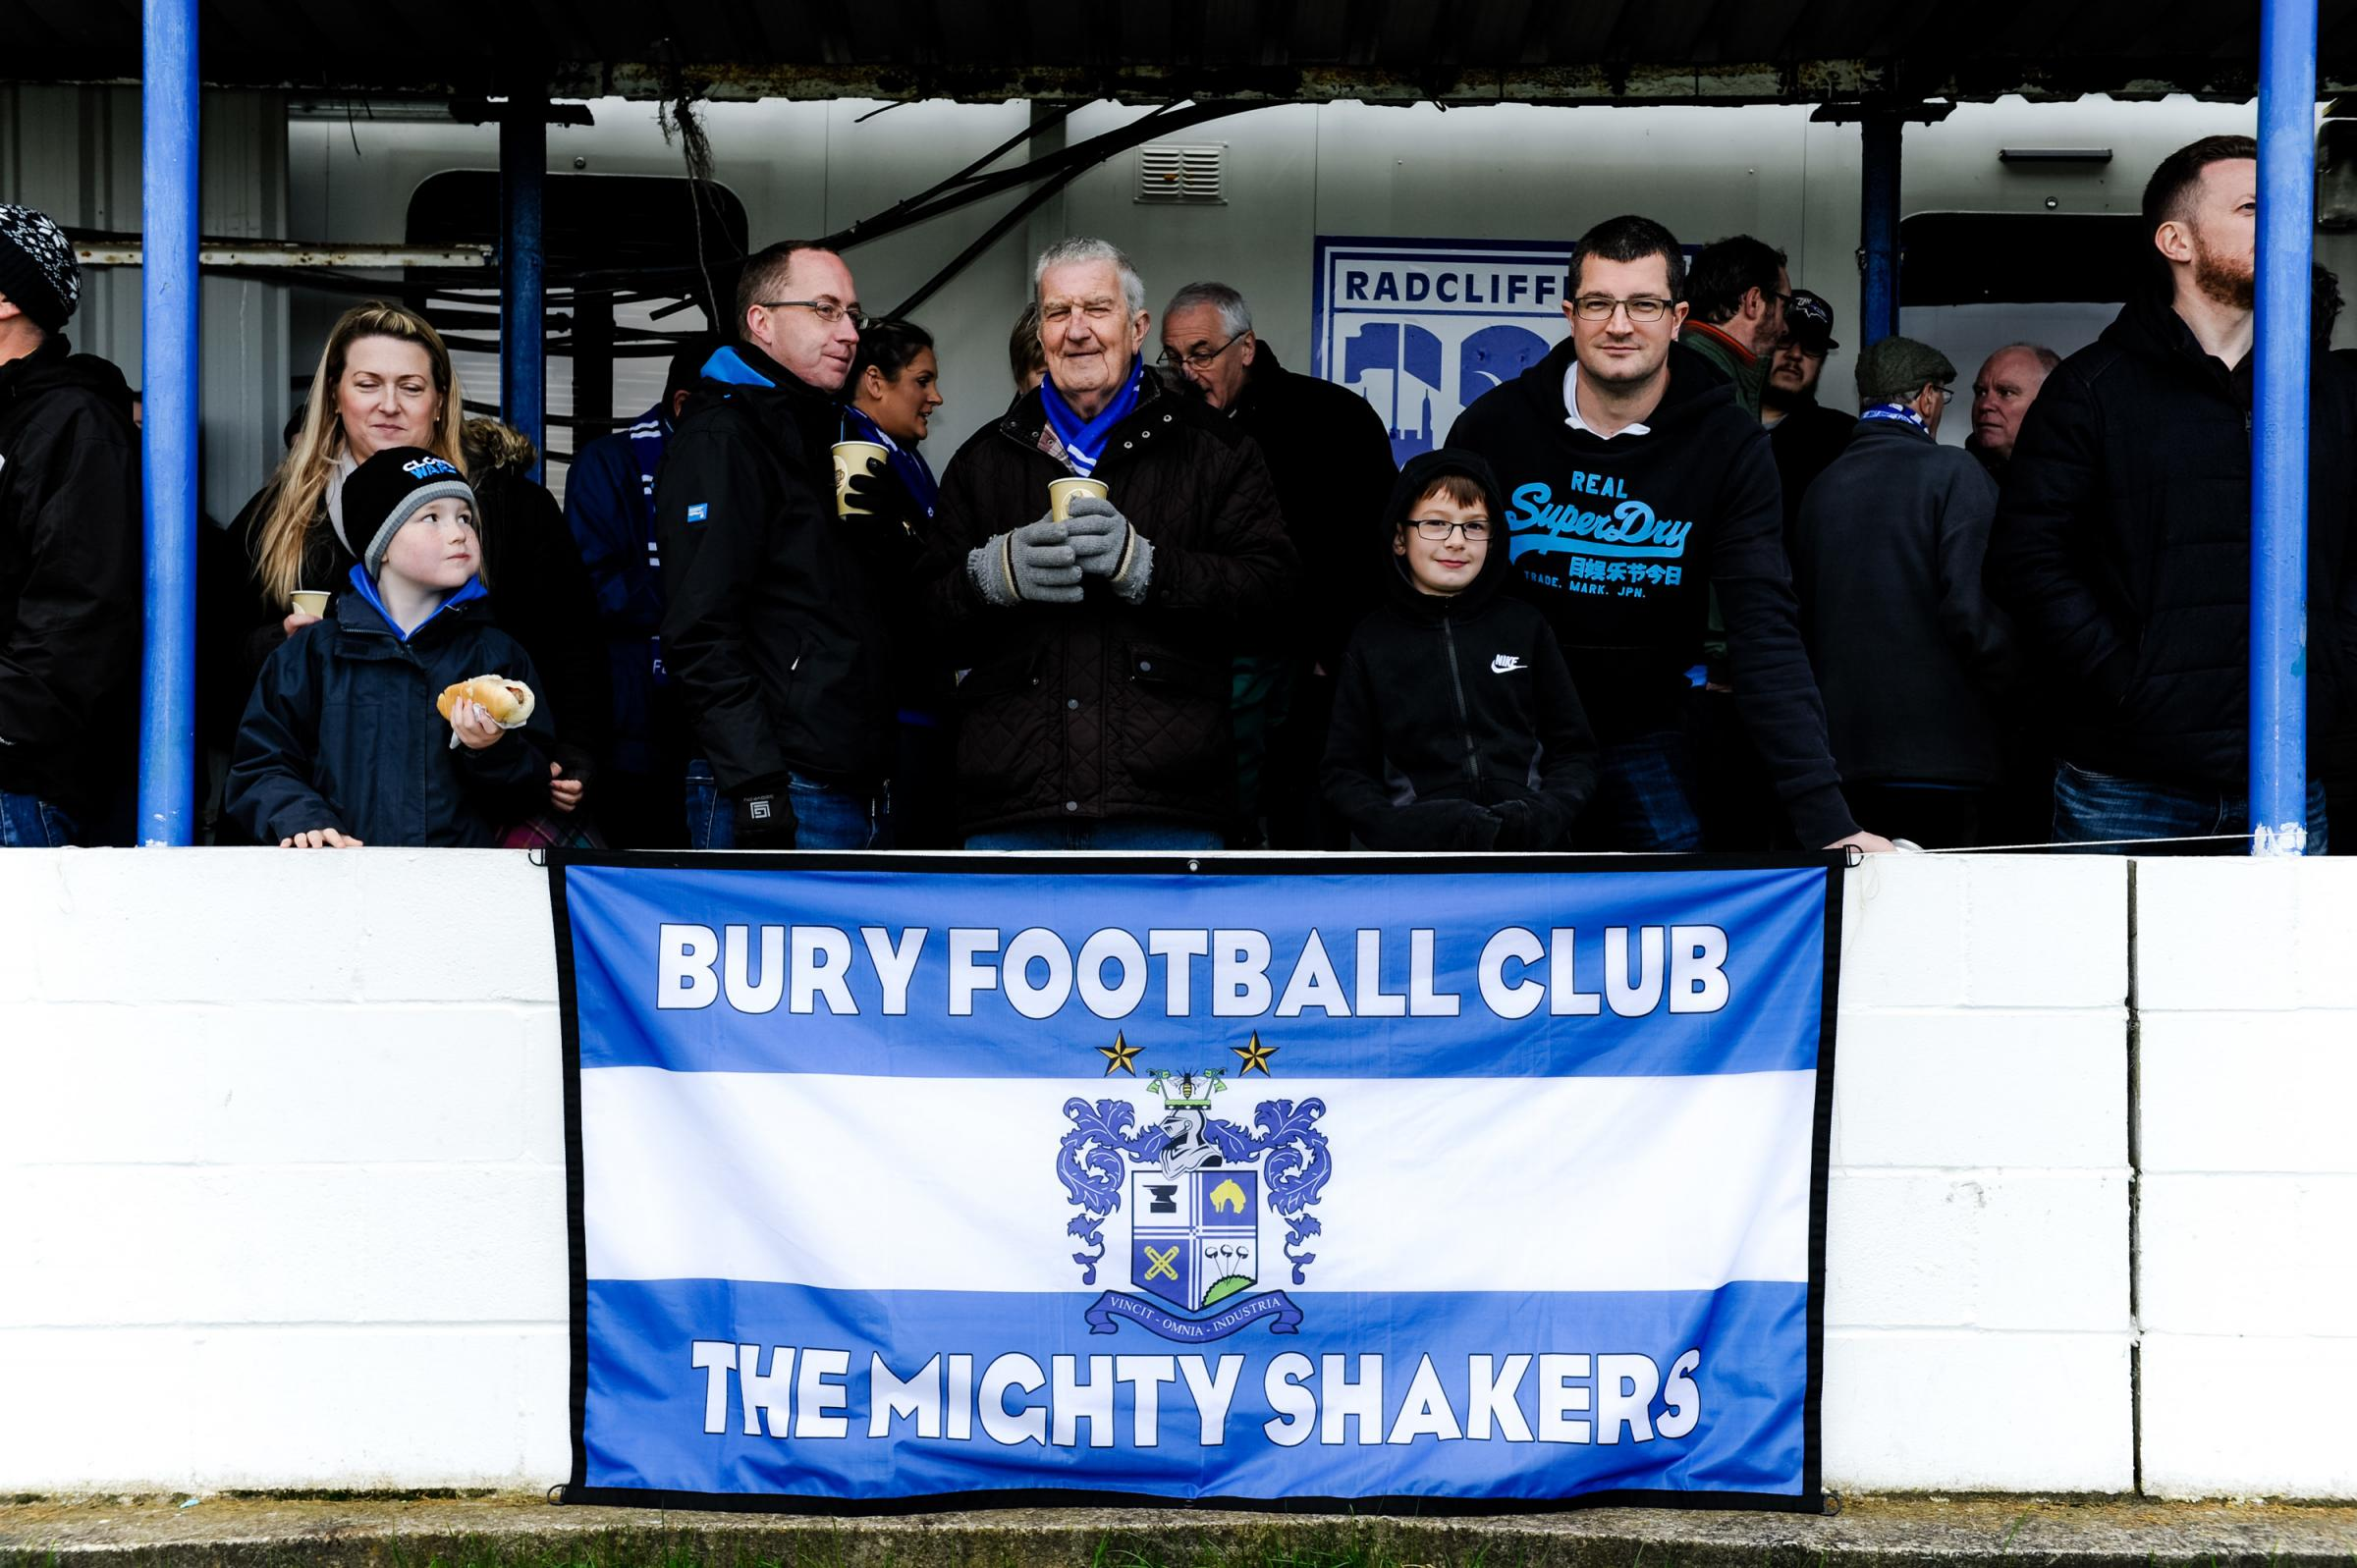 Bury phoenix movement want to bring community and club back together